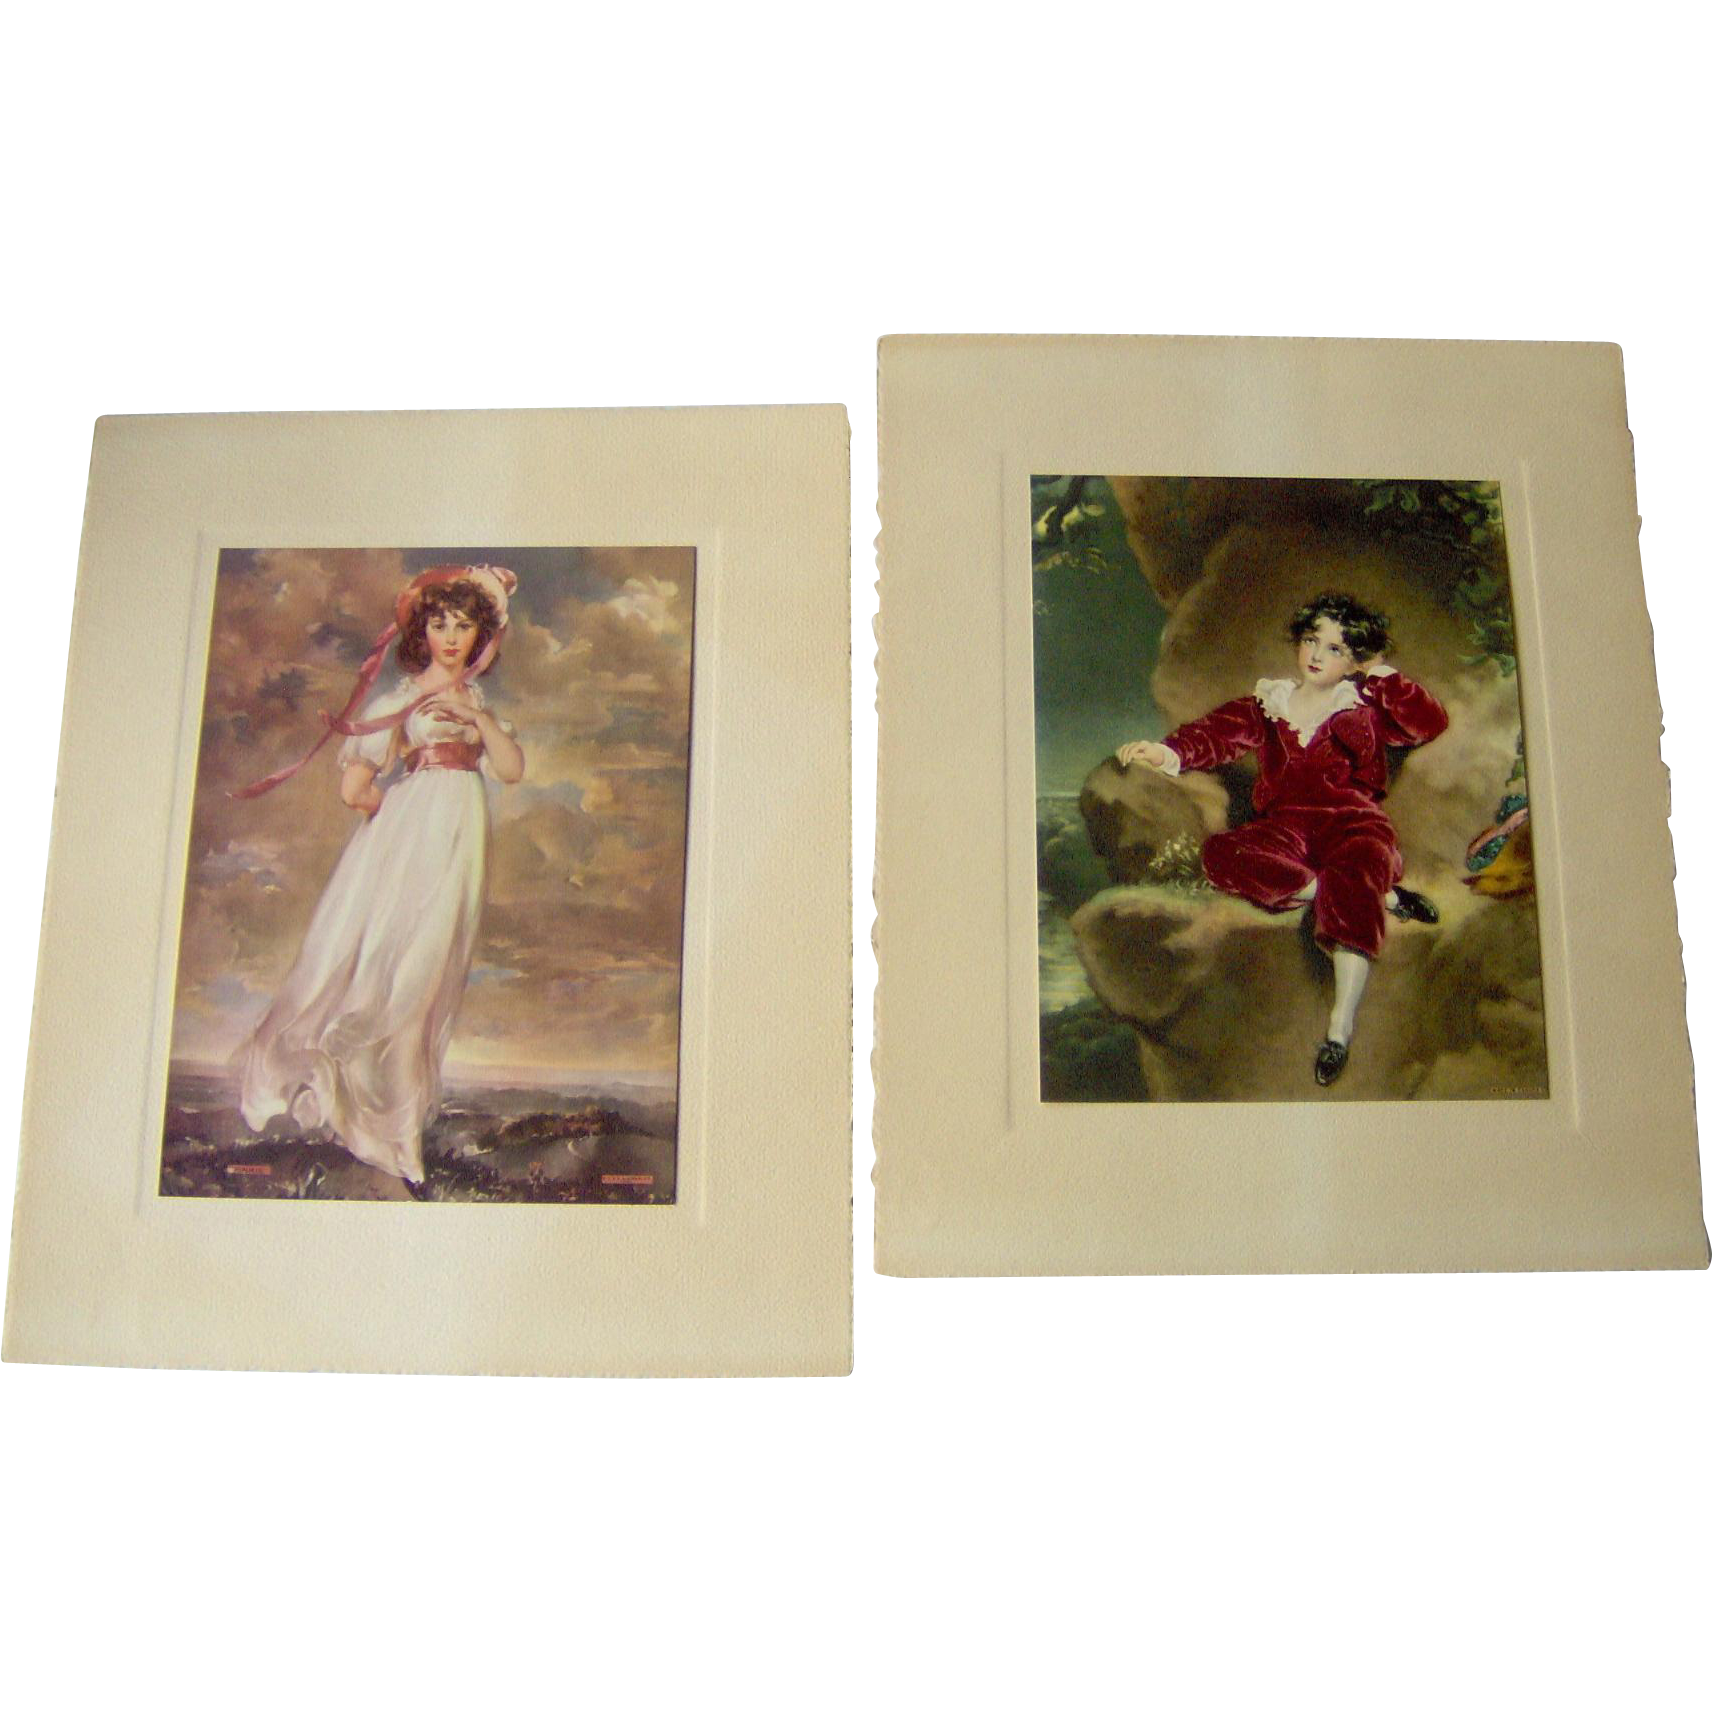 Vintage Prints of Pinkie and Master Lambton